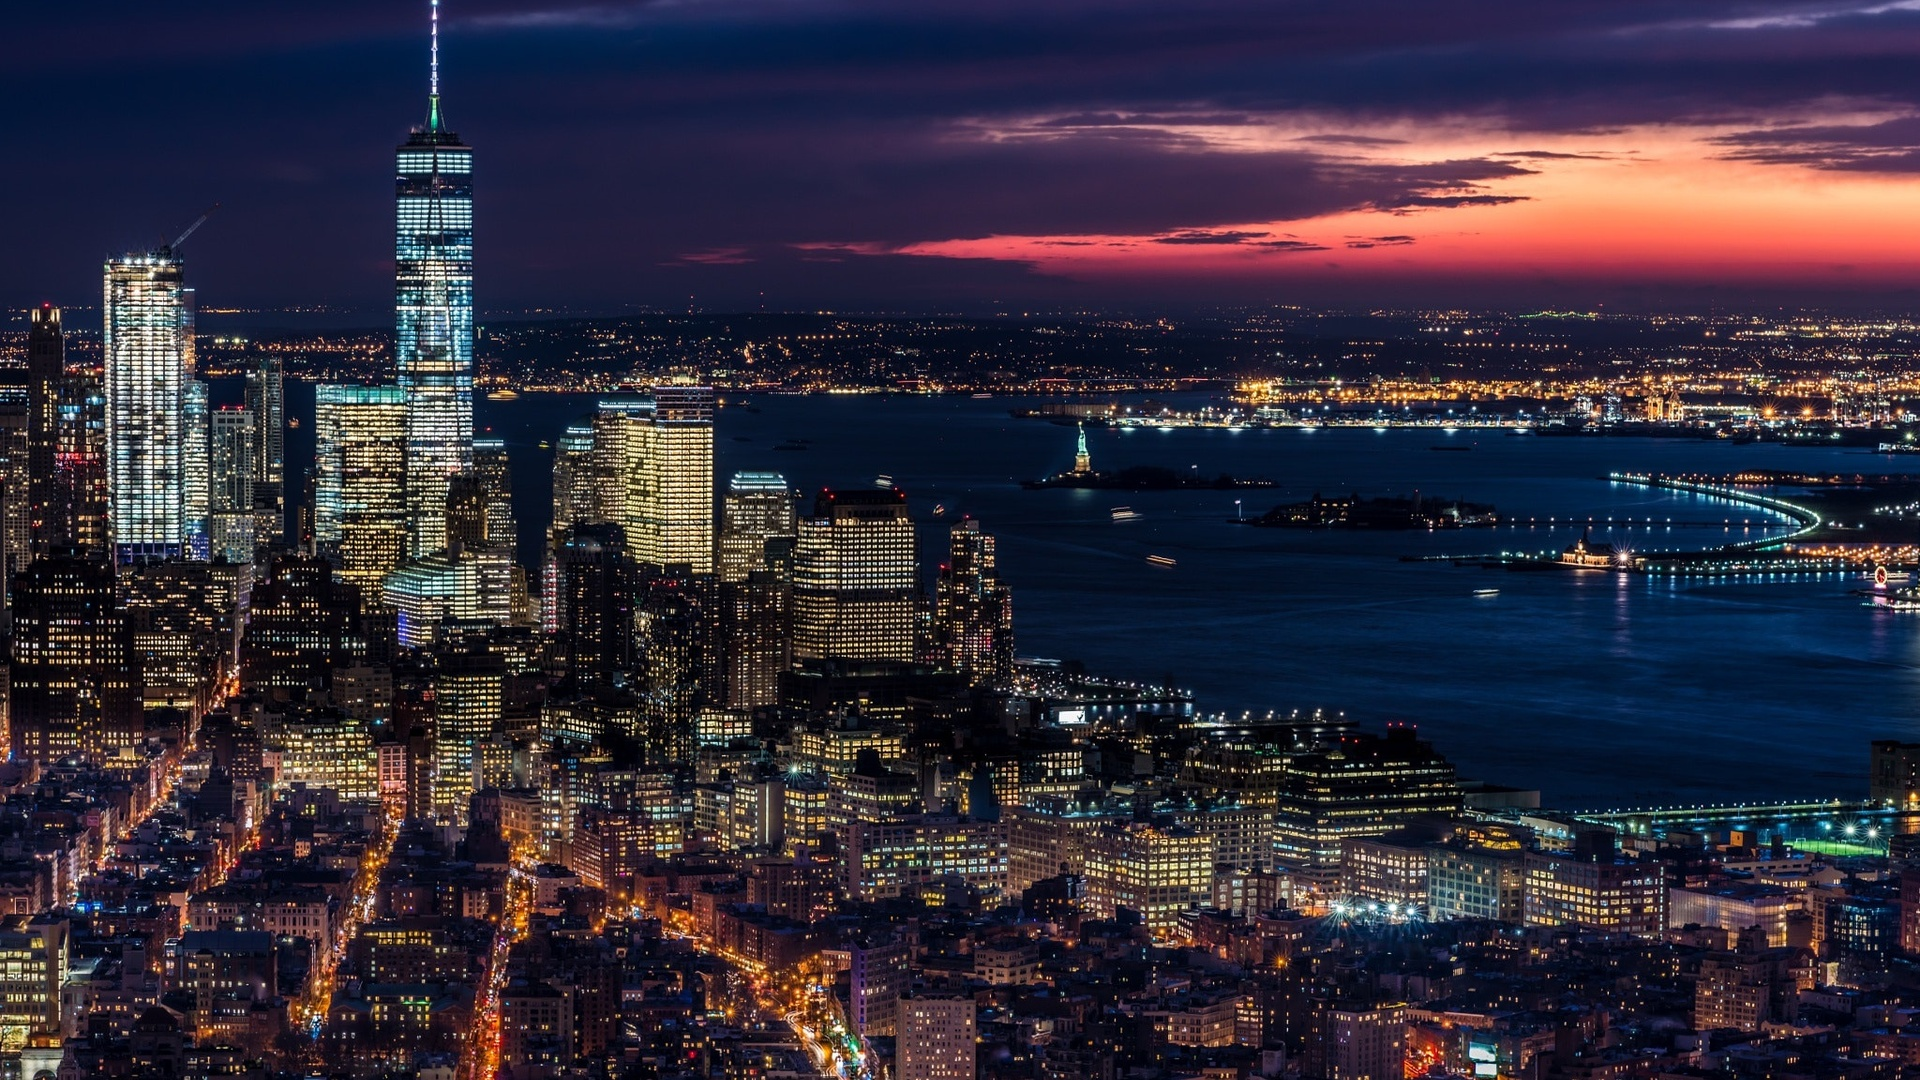 1920x1080 new york hd laptop full hd 1080p hd 4k wallpapers images backgrounds photos and - Wallpaper 1080p new york ...